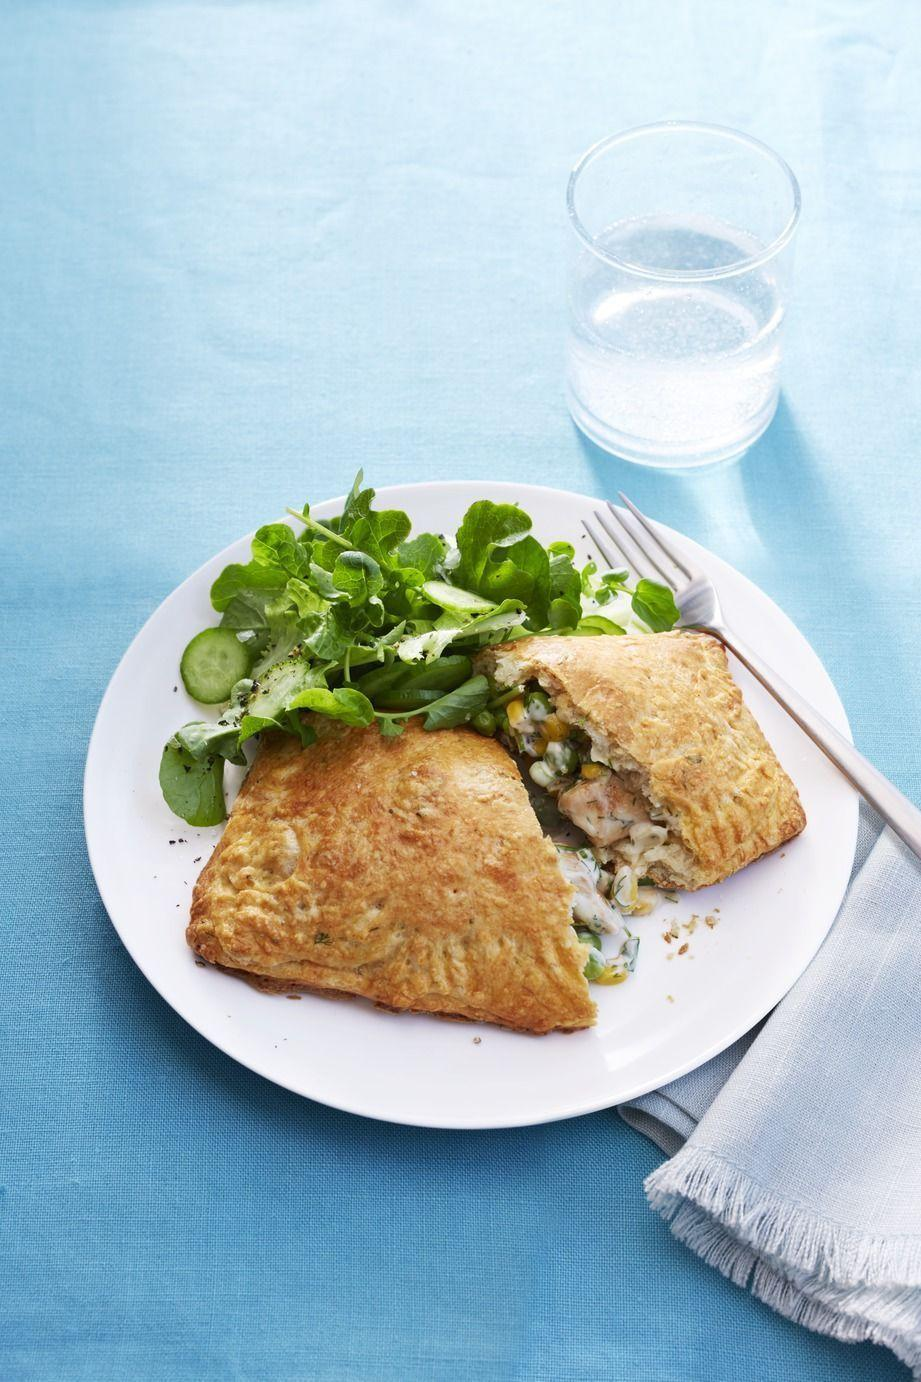 """<p>This comforting classic gets a handheld makeover with the addition of homemade biscuit dough.</p><p><em><a href=""""https://www.womansday.com/food-recipes/food-drinks/recipes/a54438/chicken-pot-pie-turnovers-recipe/"""" rel=""""nofollow noopener"""" target=""""_blank"""" data-ylk=""""slk:Get the recipe from Woman's Day »"""" class=""""link rapid-noclick-resp"""">Get the recipe from Woman's Day »</a></em></p>"""